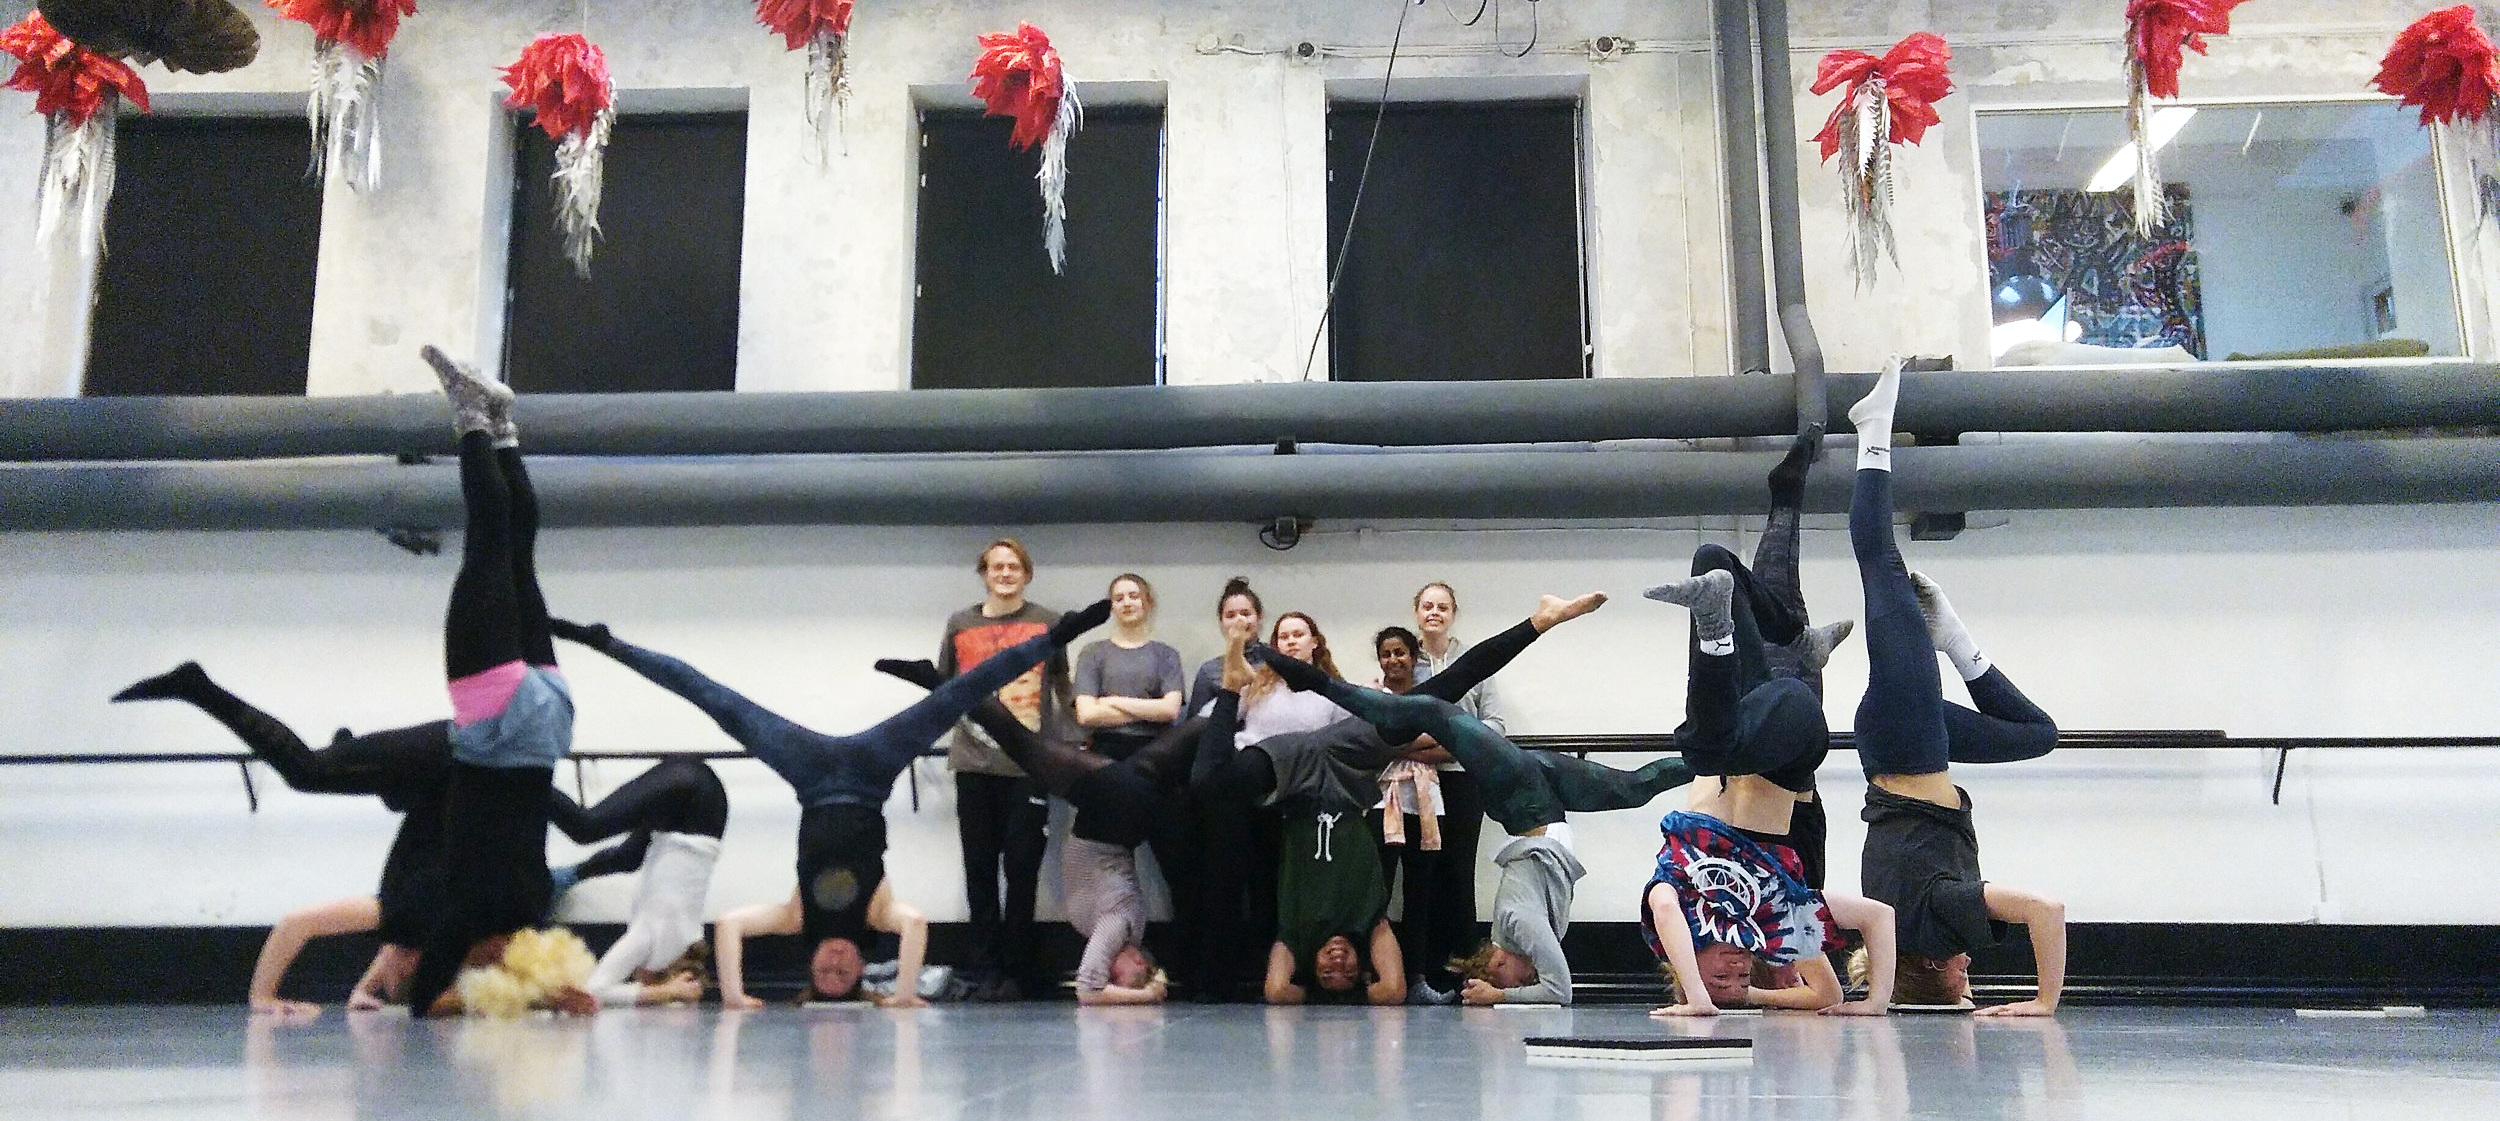 Teaching inversions at Stepz Danseuddannelse